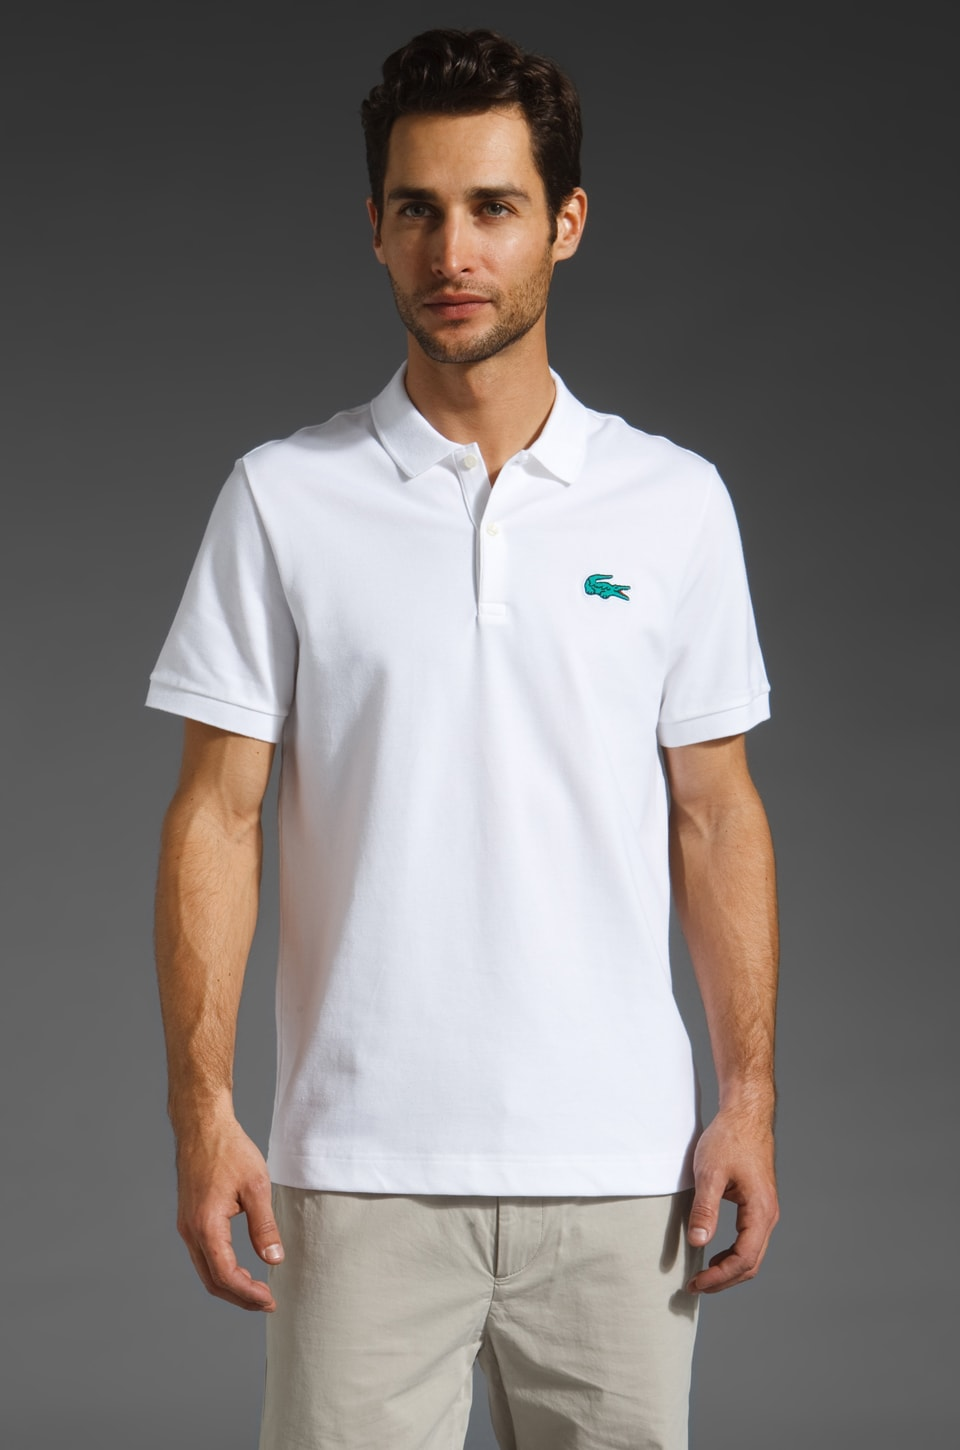 Lacoste Solid Polo with Pique Croc in White